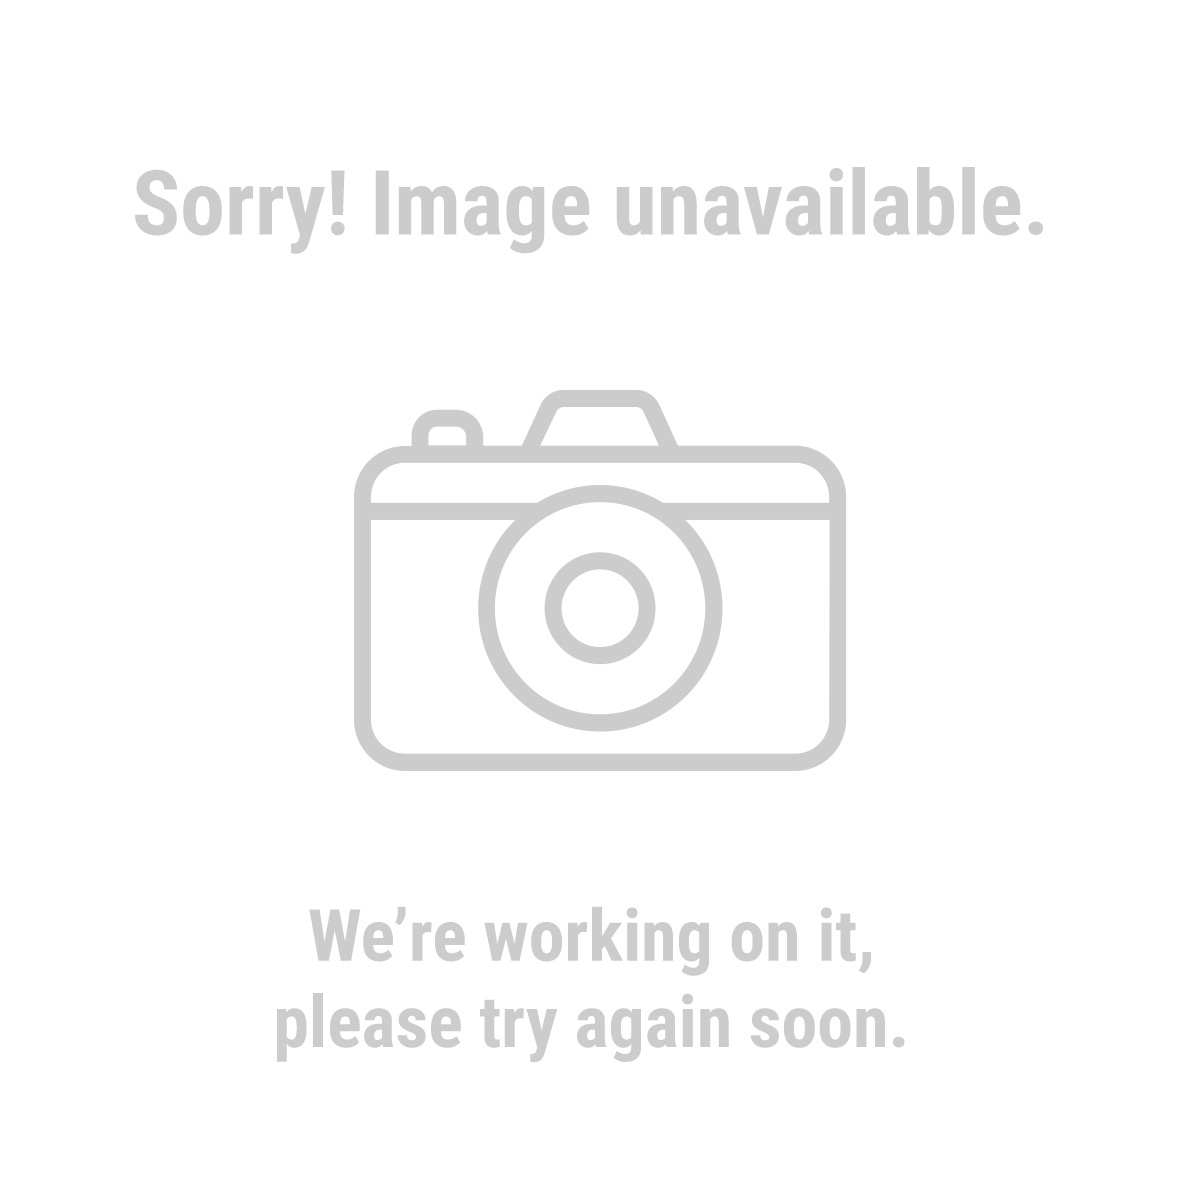 "Haul-Master® 97711 3/8"" x 14 Ft. Trucker's Chain"